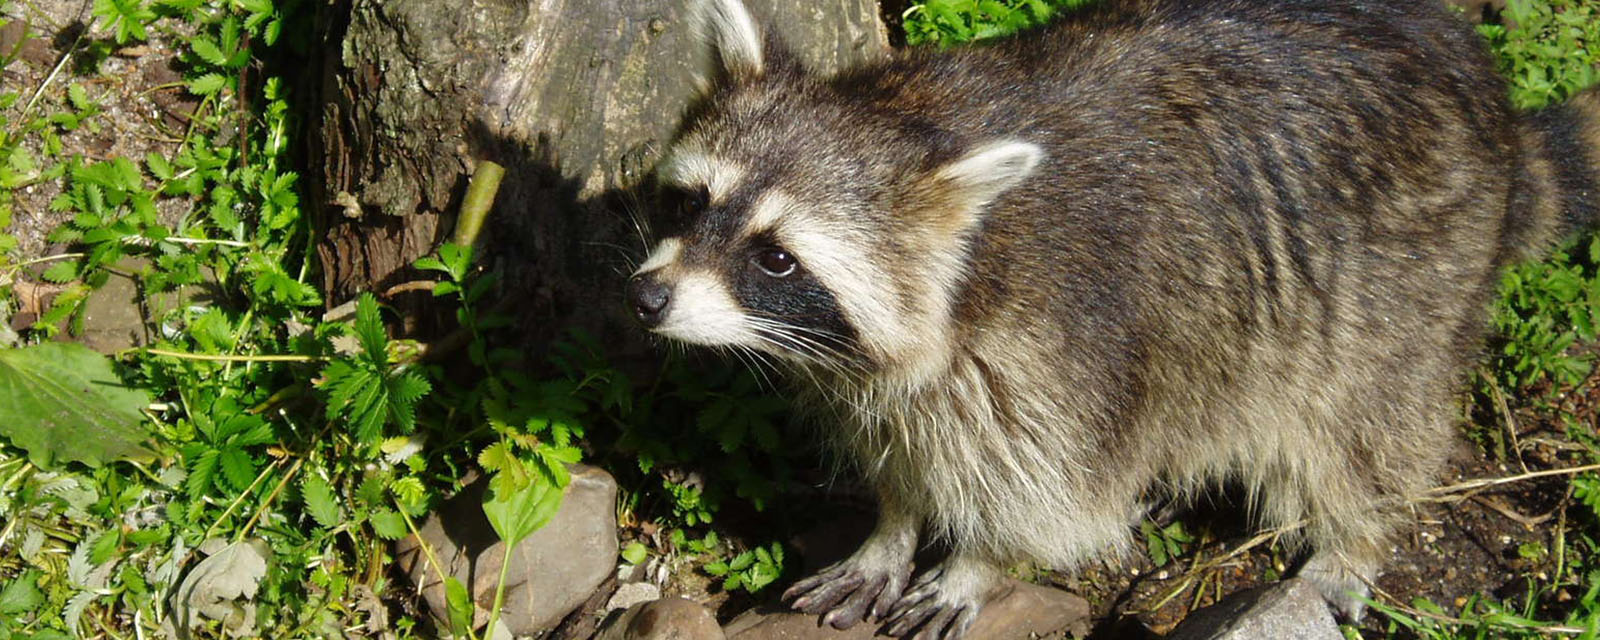 picture of small raccoon